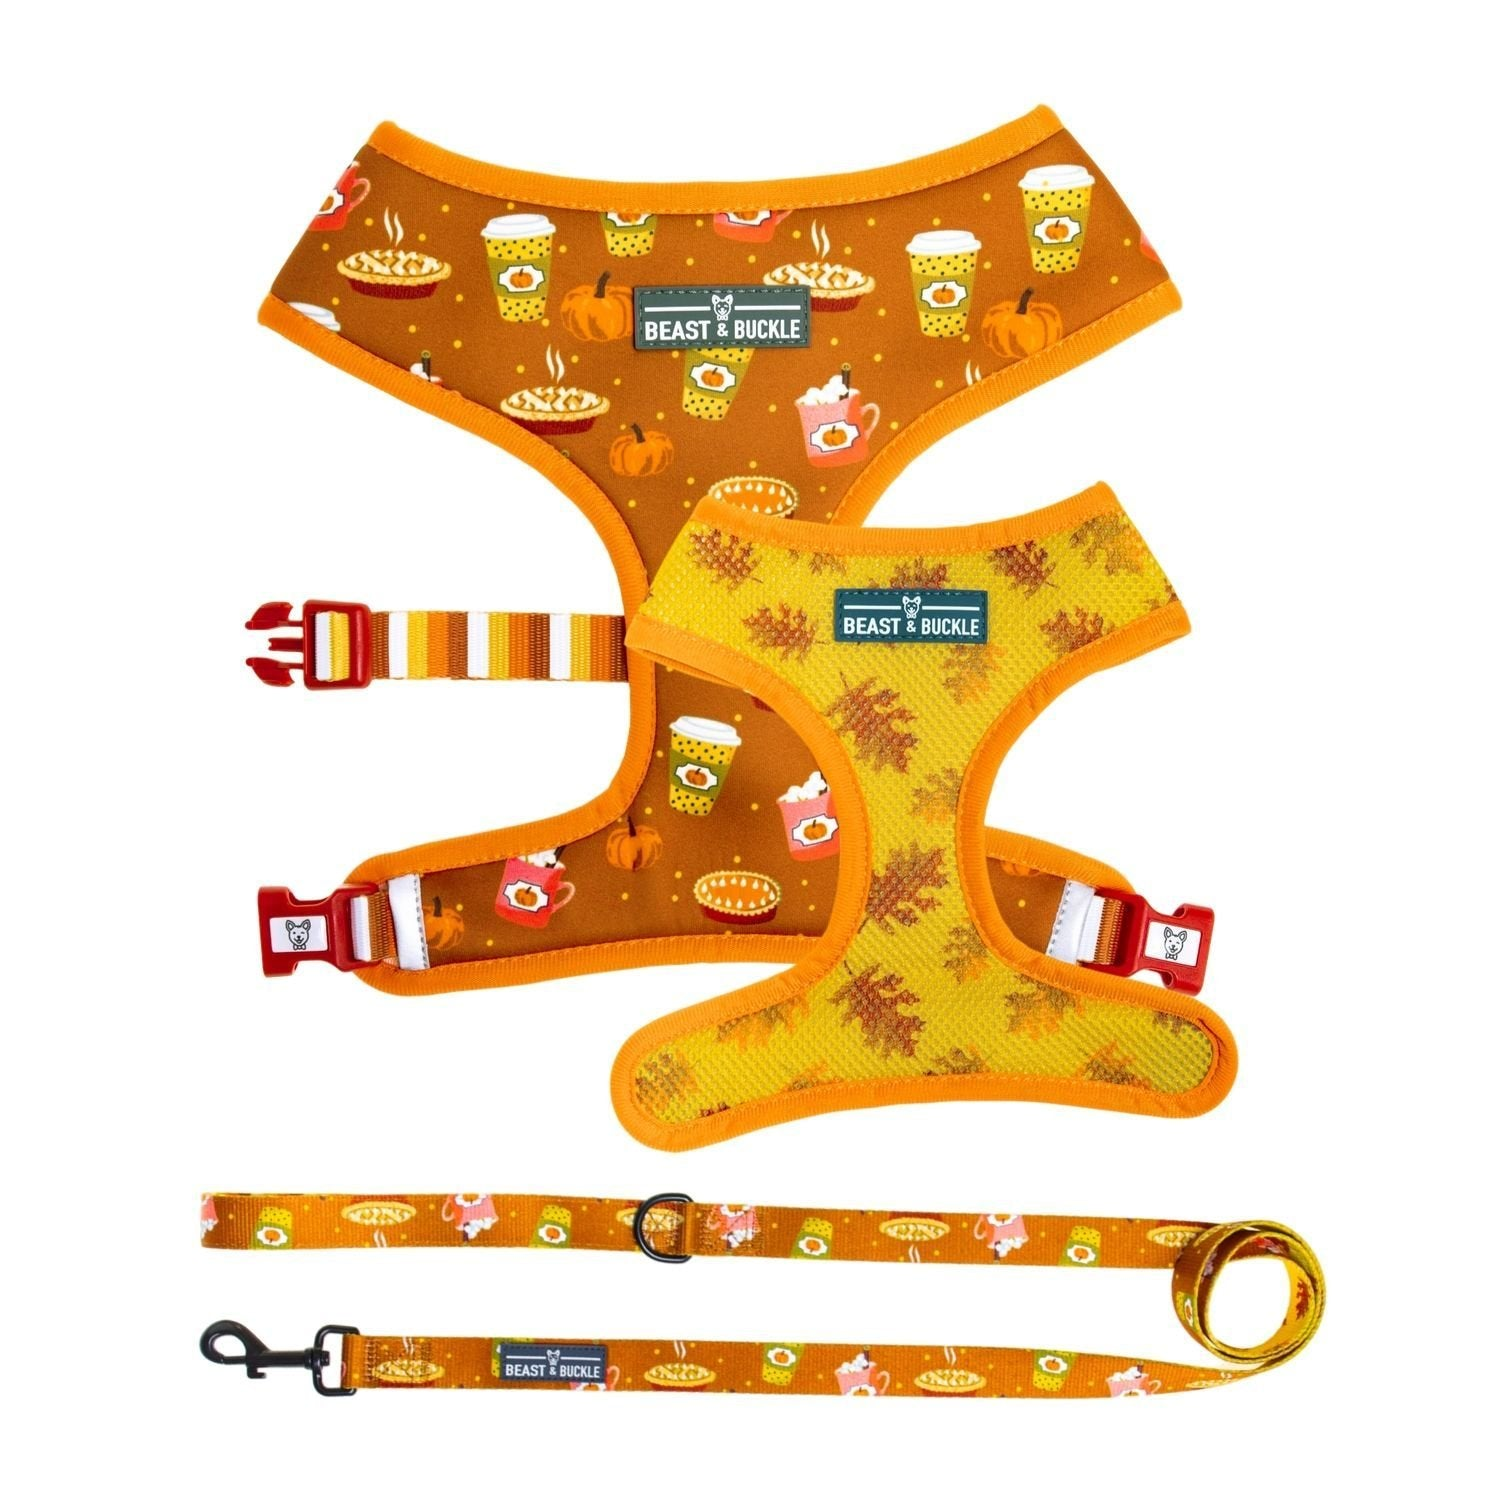 Pumpkin Spice Harness and Leash Set - Beast & Buckle